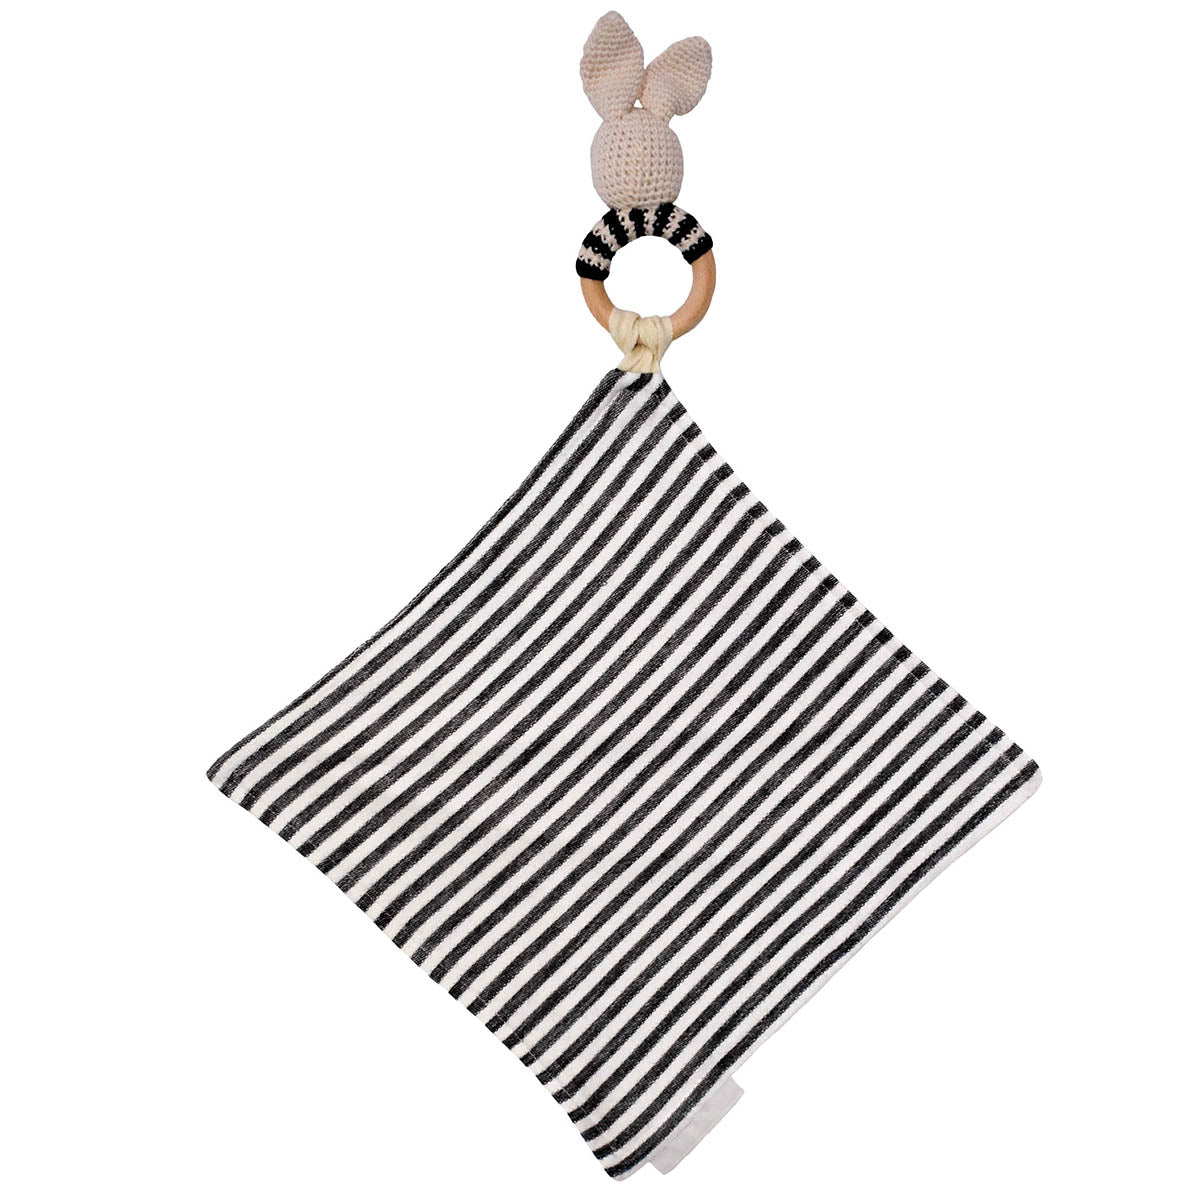 Back of Bunny Rattle with Black and Off White Stripe Mini Blanket